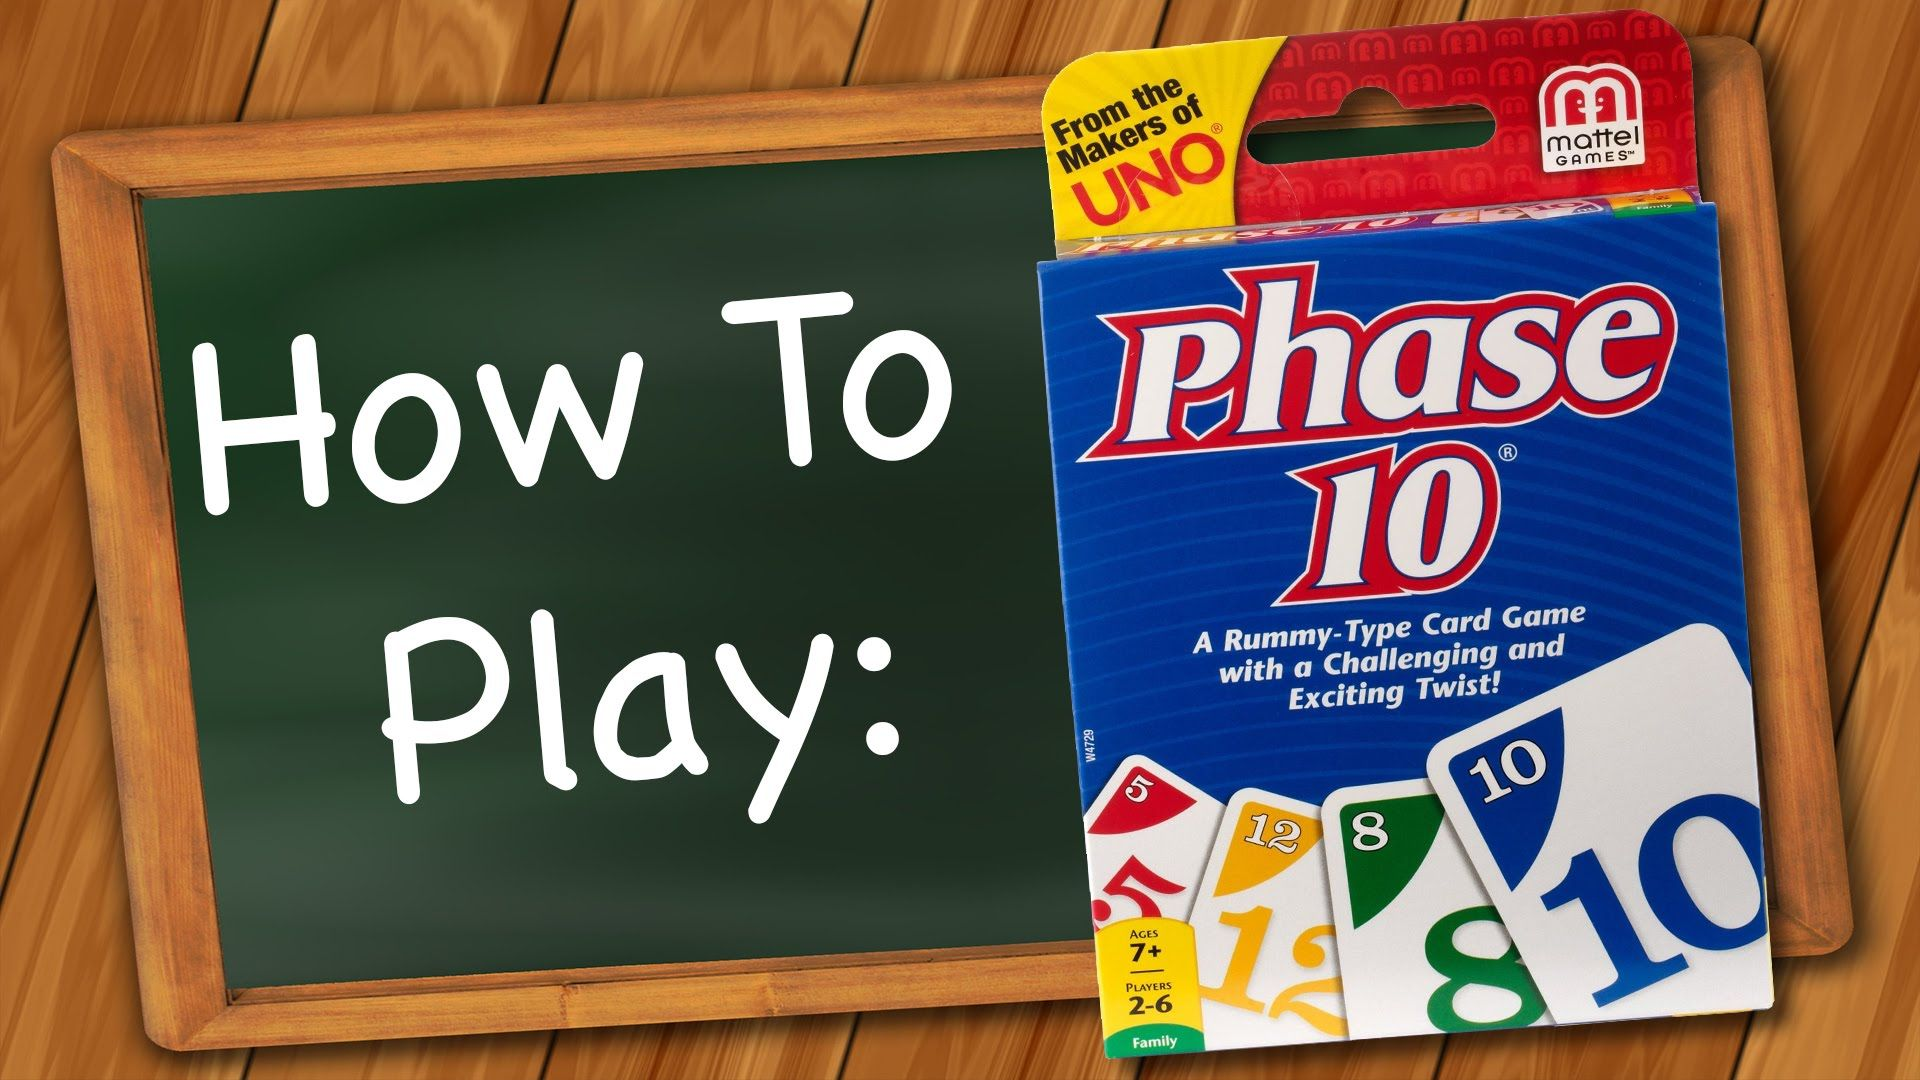 How to play phase 10 youtube uno card game rules uno